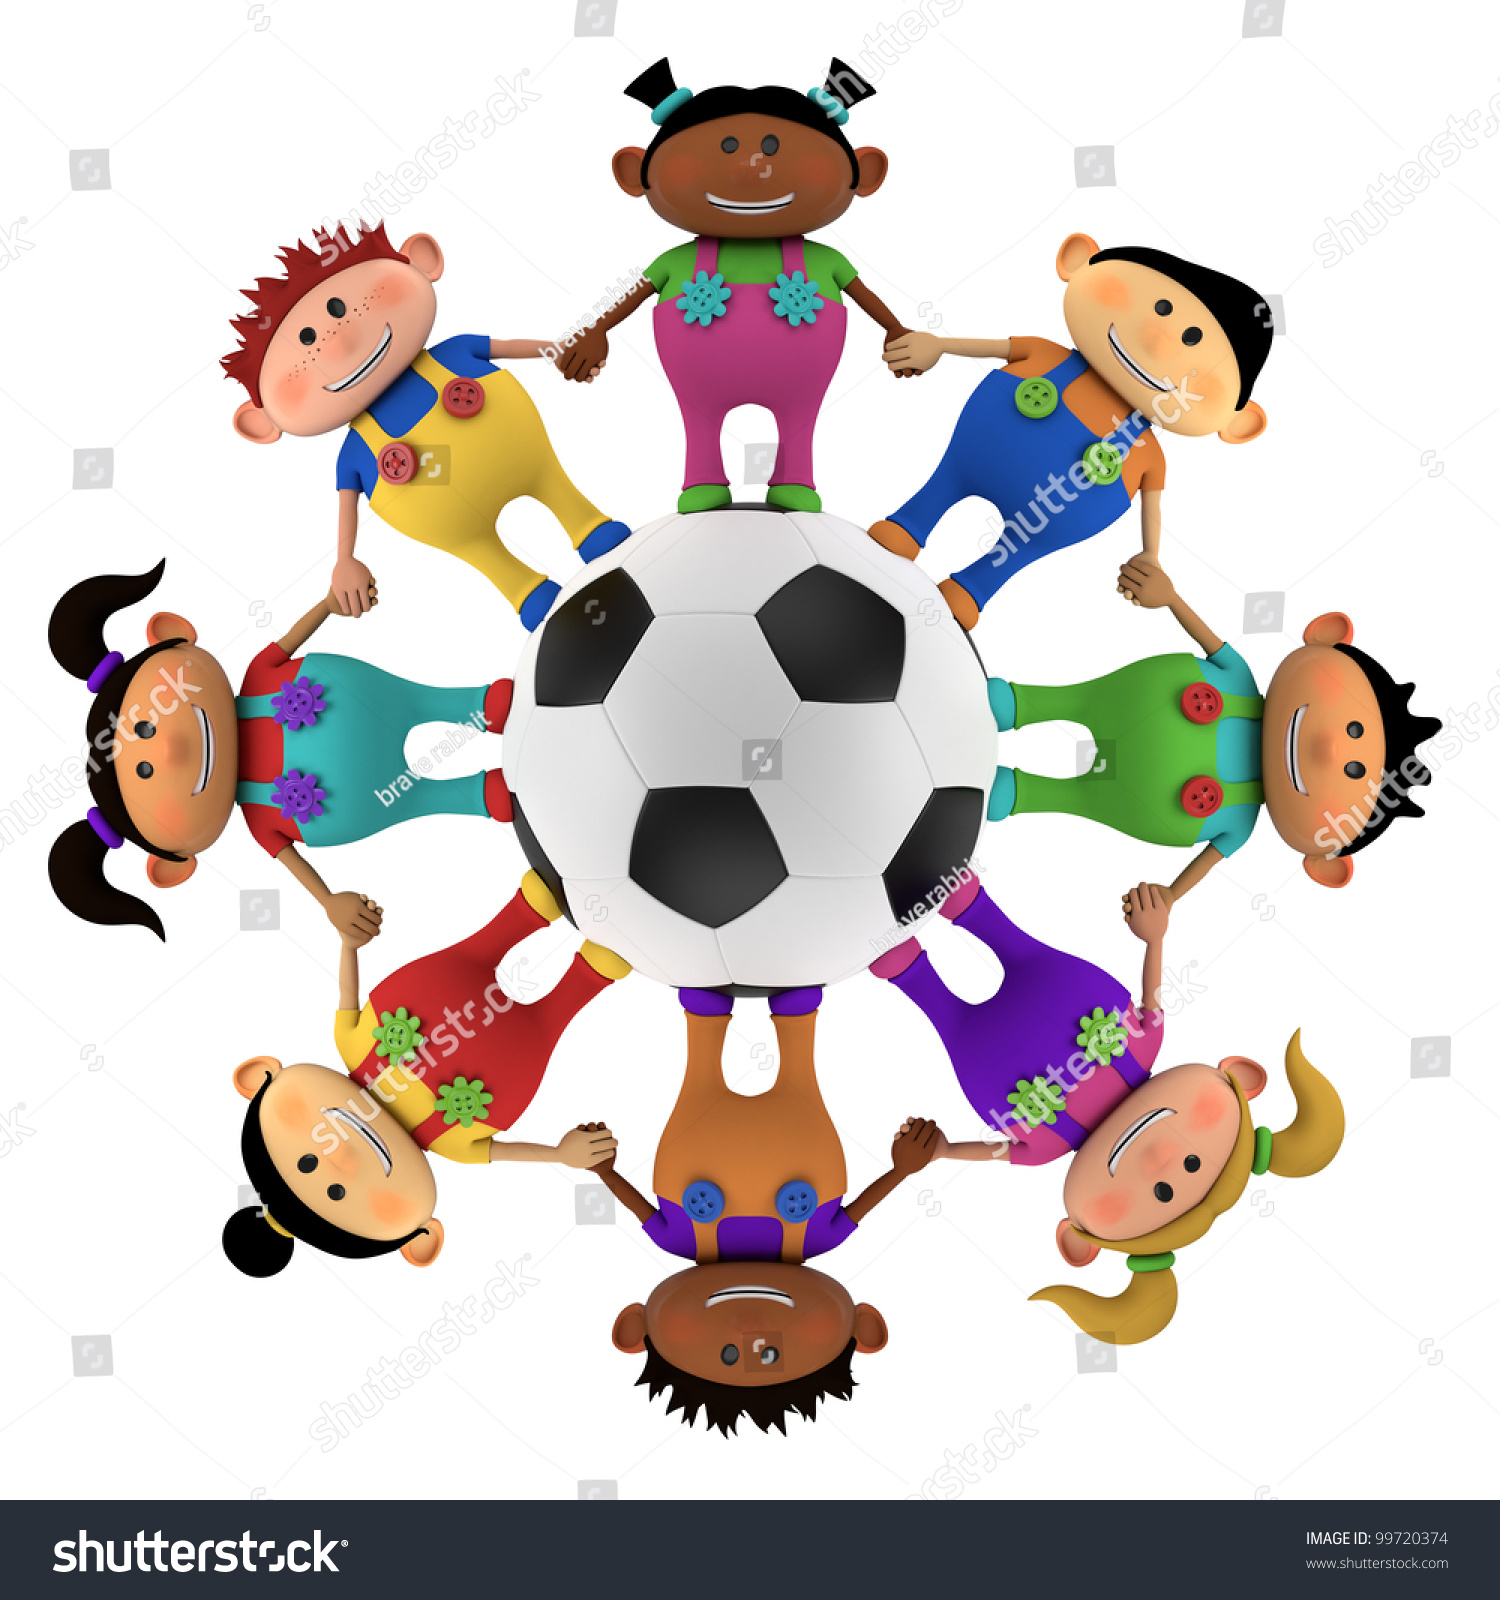 3D  Lolicon young cute little multiethnic cartoon kids holding hands around a big football - high quality 3d illustration